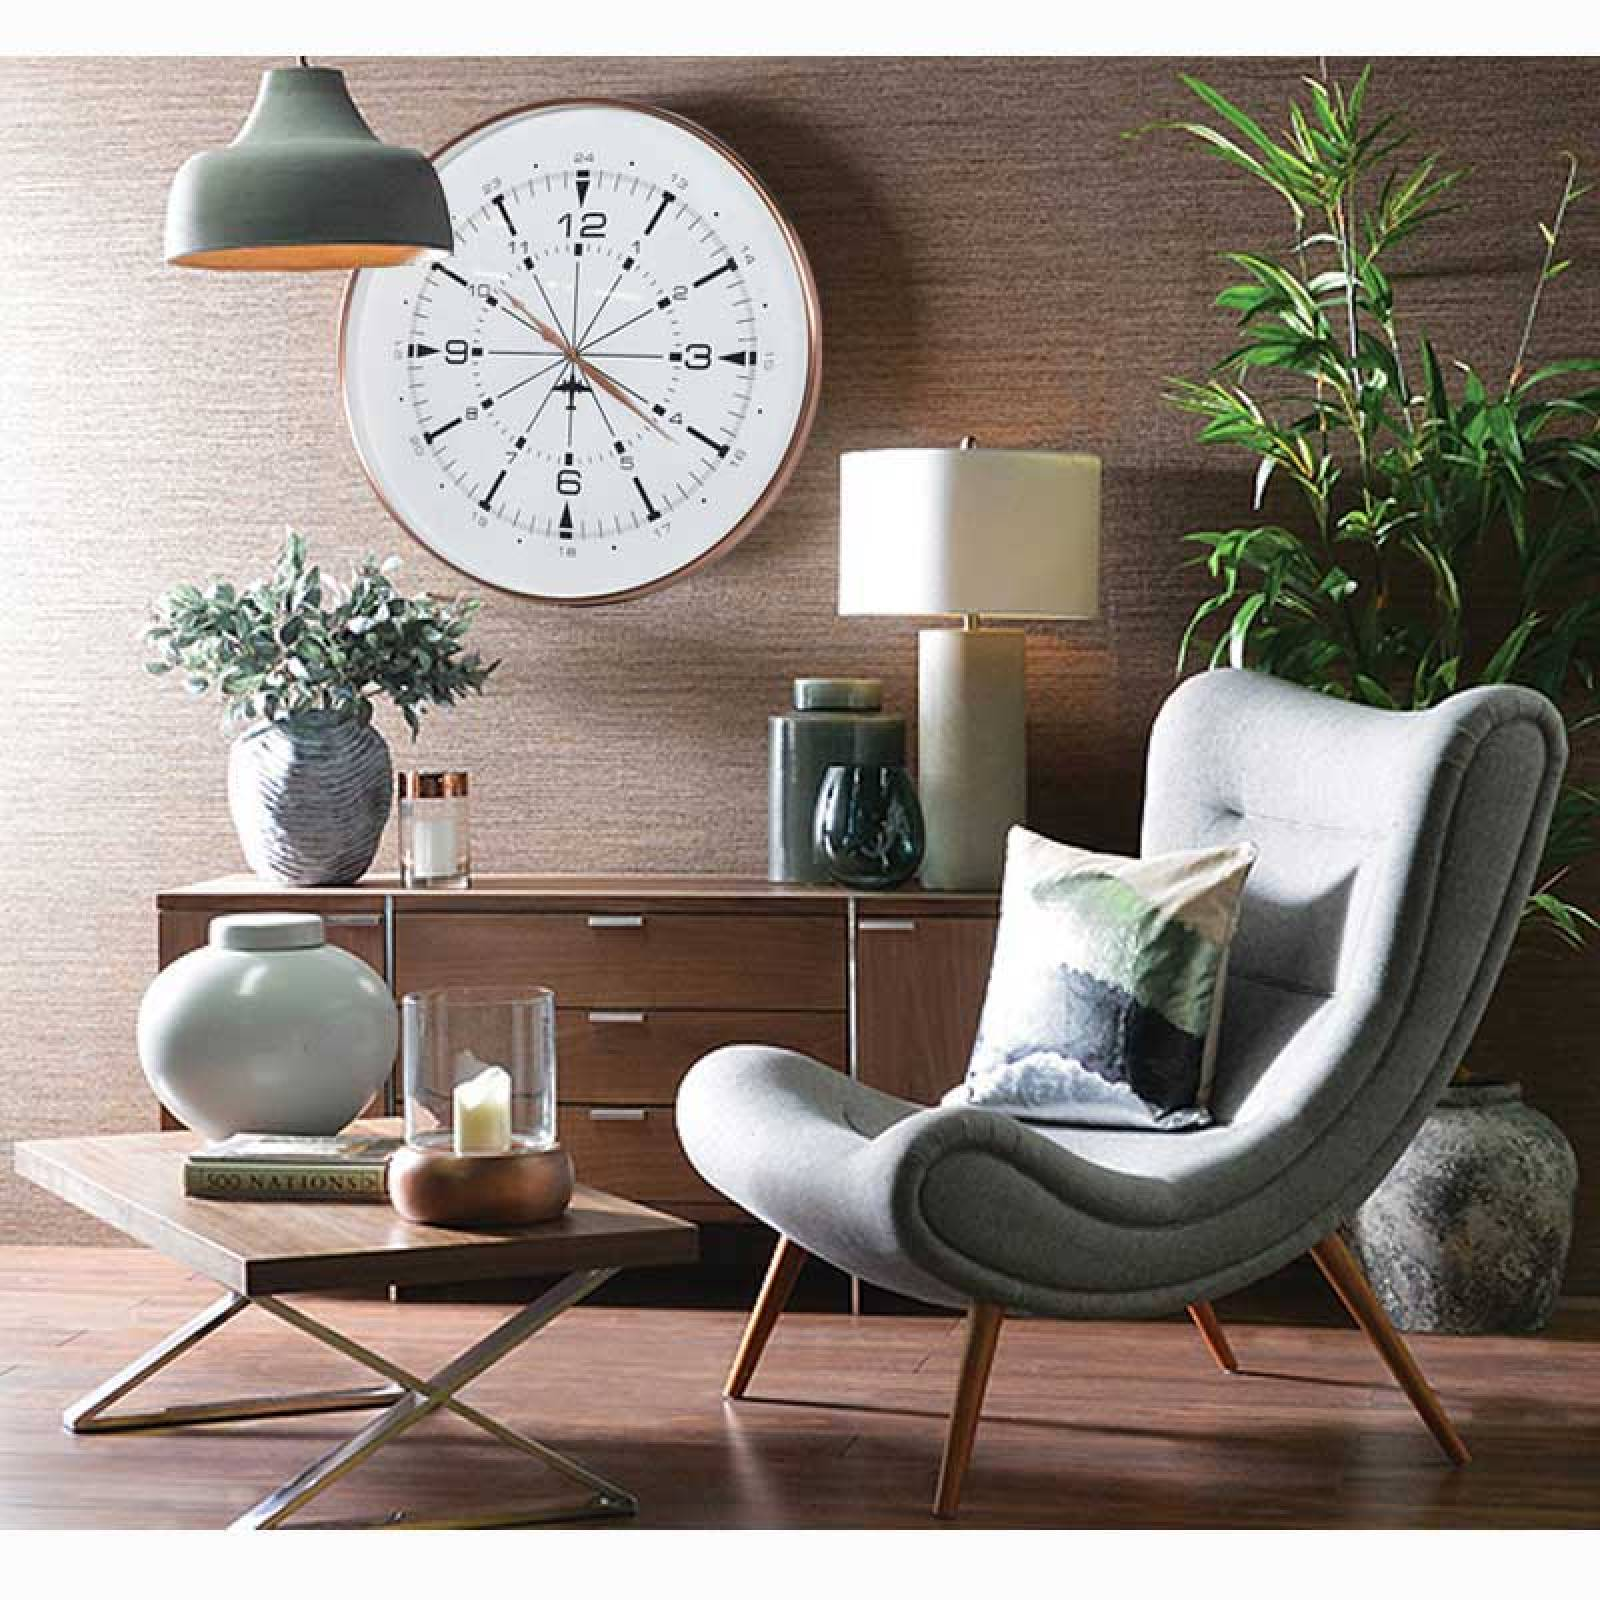 Copper Finish Airport Wall Clock Large 76cm thumbnails